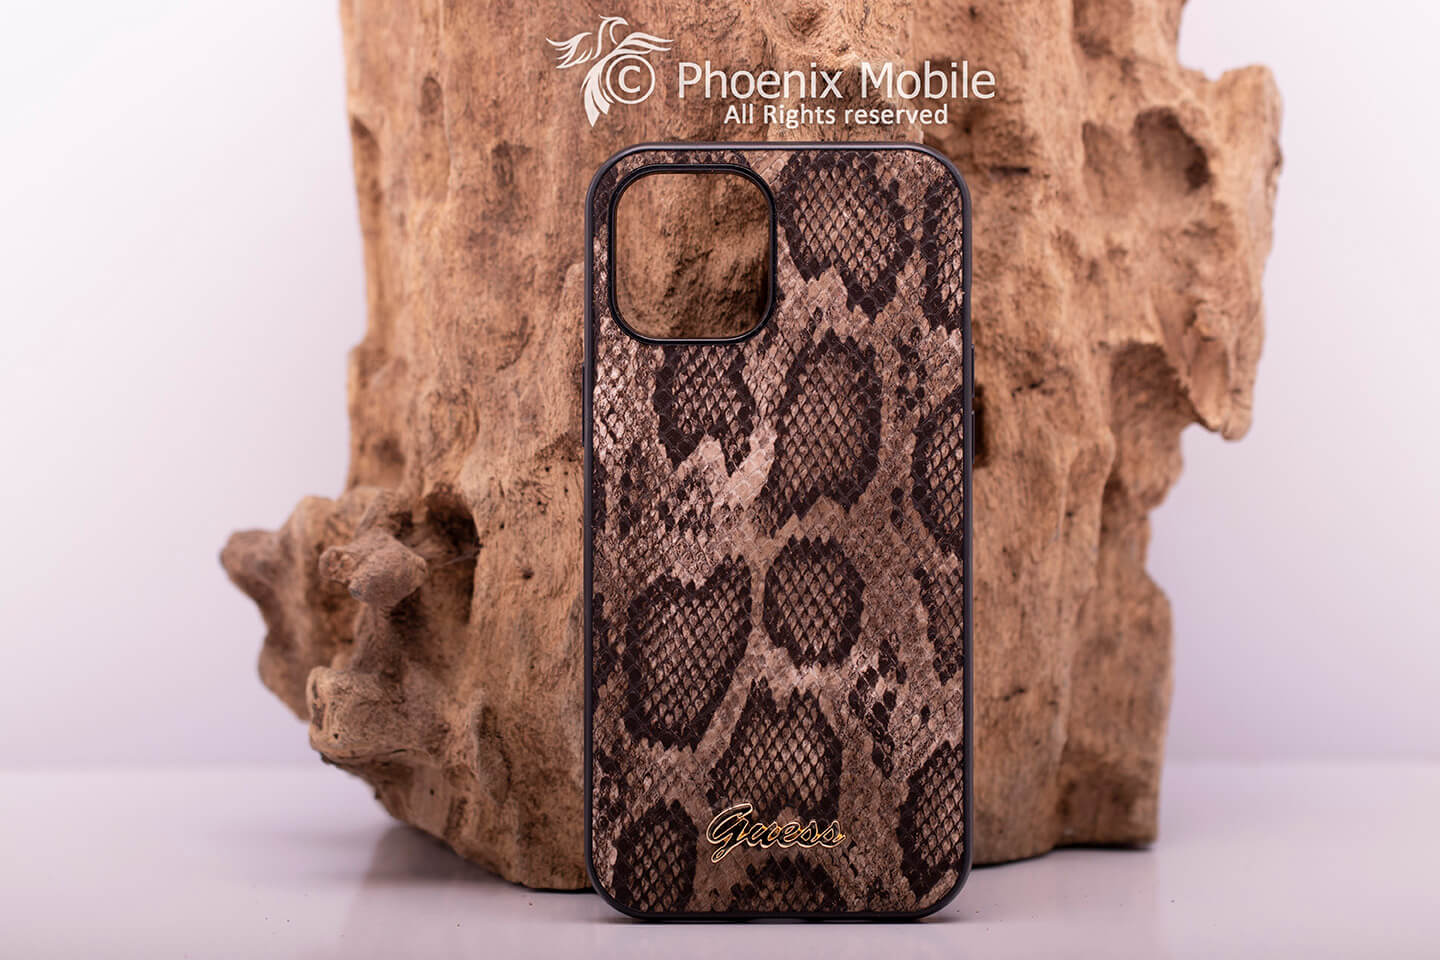 CG-mobile Guess leather python 12pro max